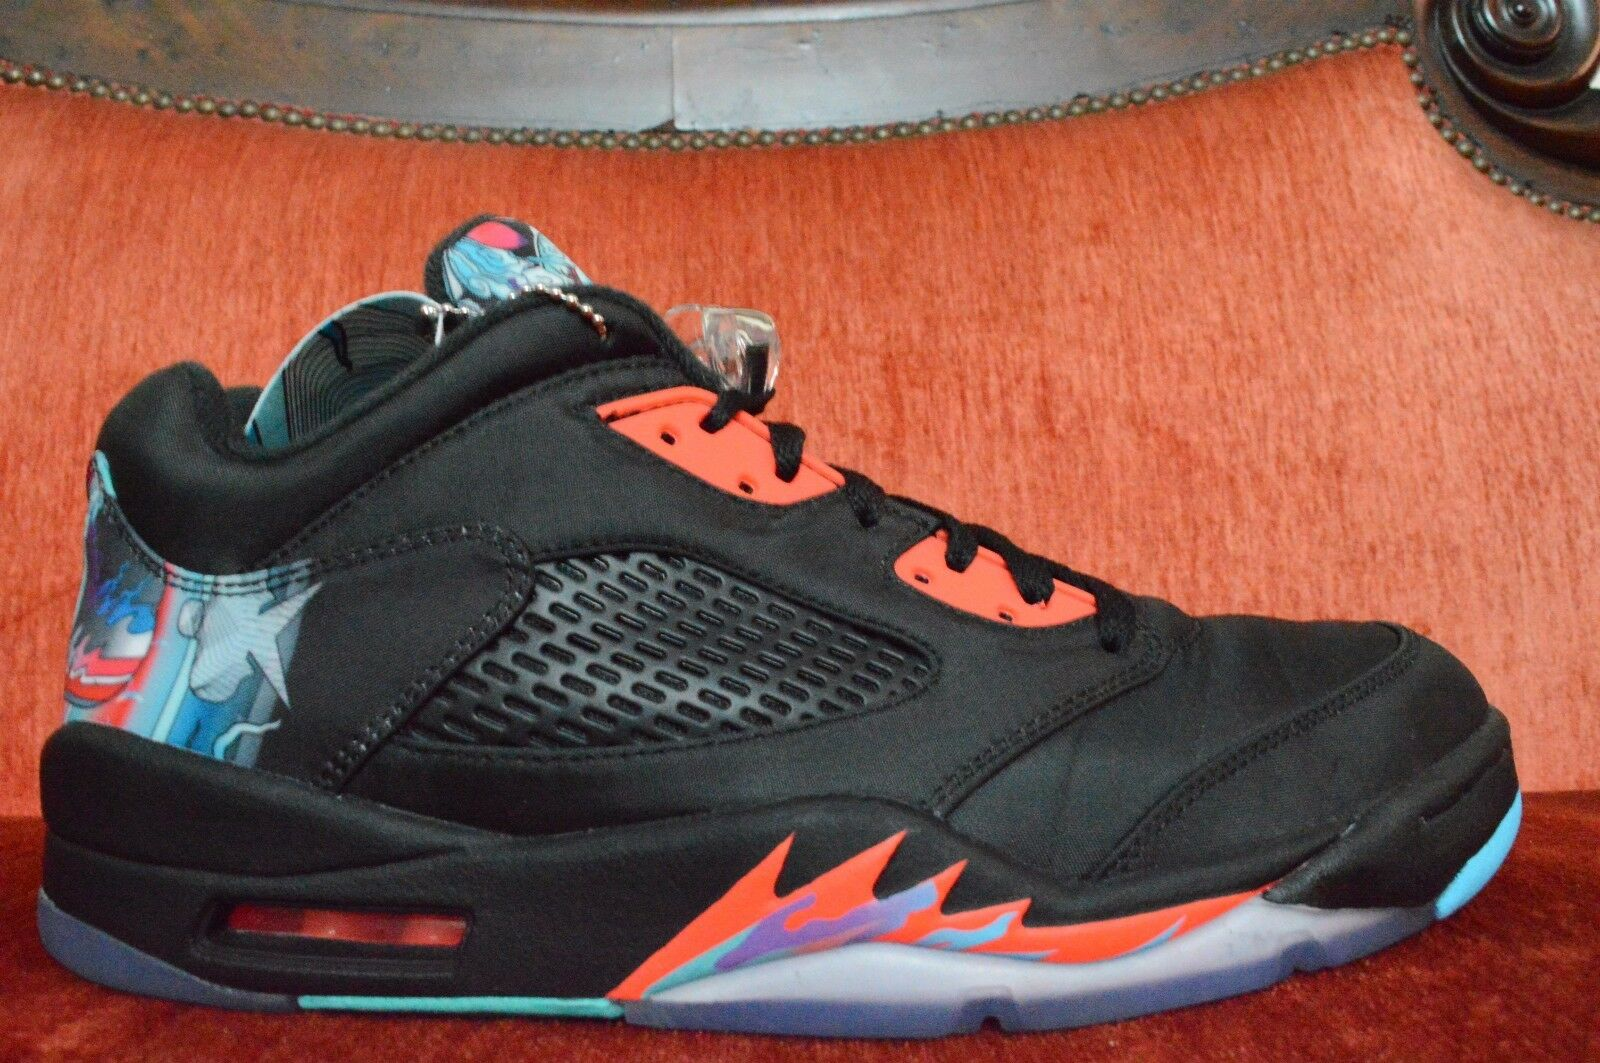 WORN 2X NIKE Air Jordan 5 V Retro Low China CNY 840475 060 OG ALL Comfortable Comfortable and good-looking